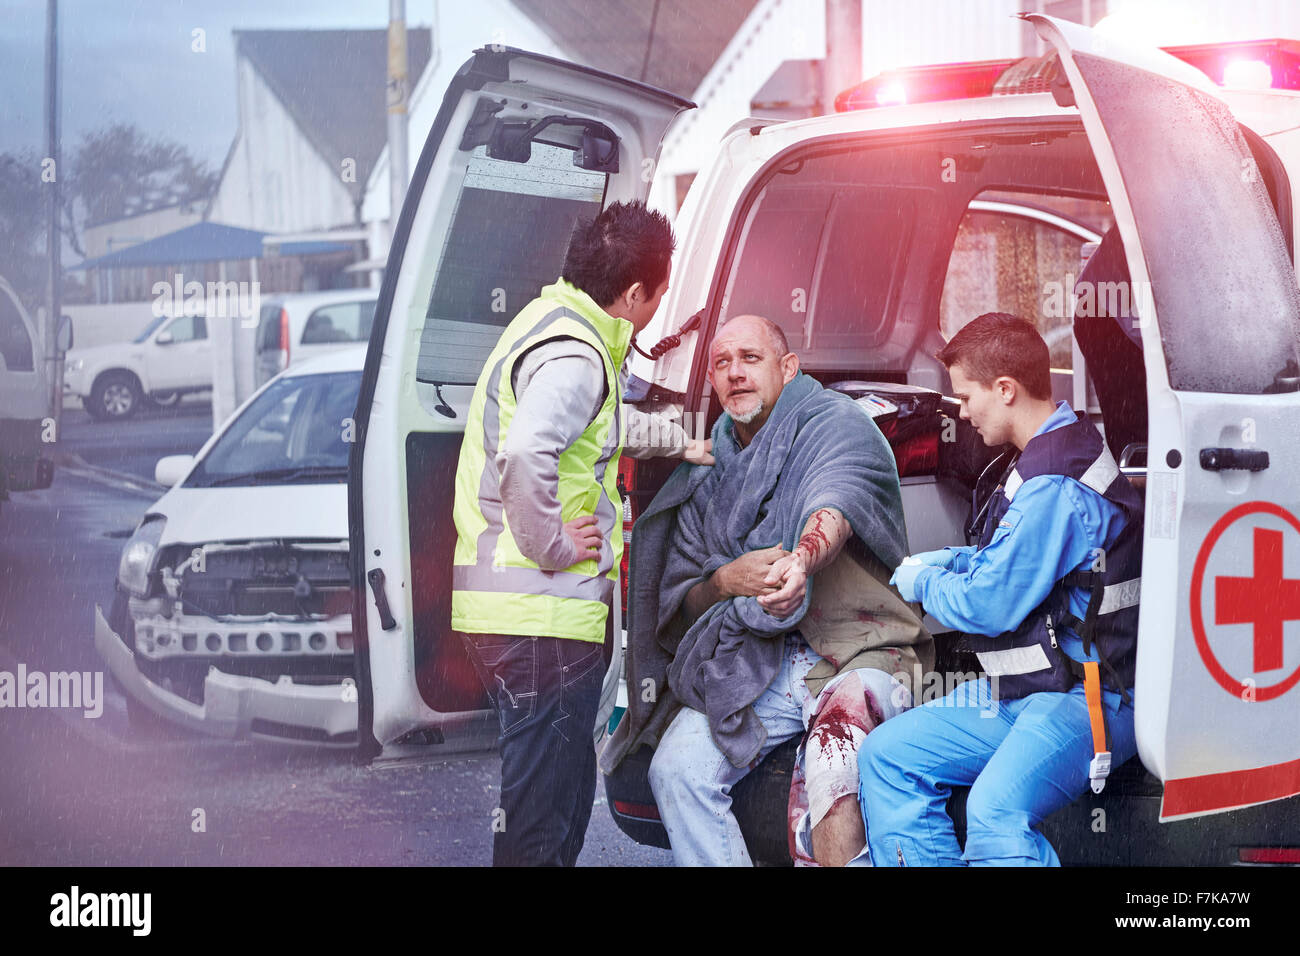 Rescue workers tending to car accident victim at back of ambulance - Stock Image